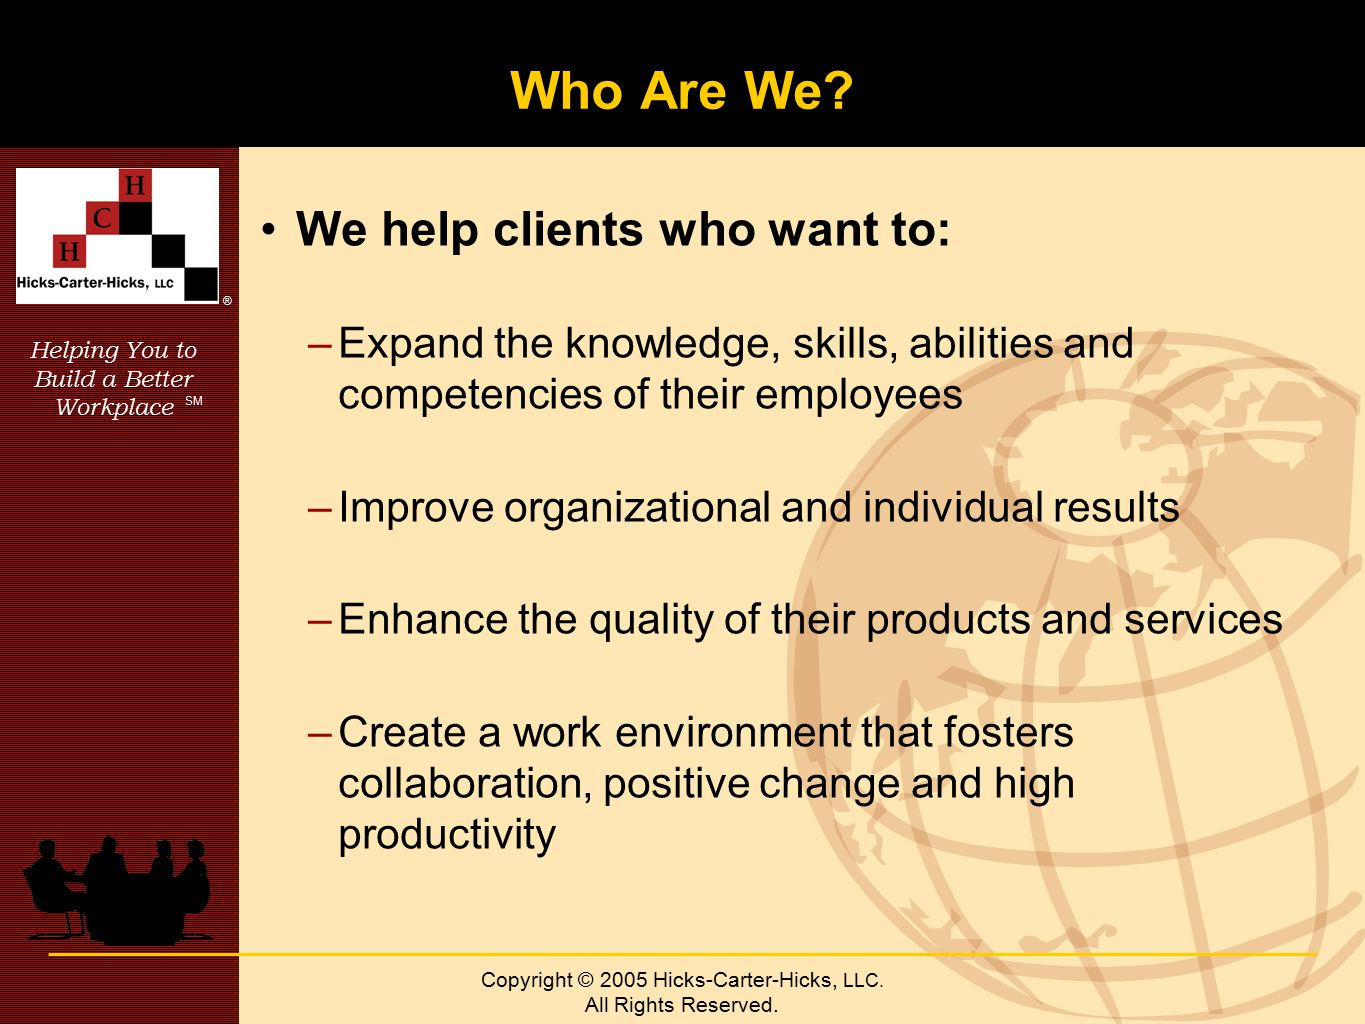 Helping You to Build a Better Workplace SM ® Copyright © 2005 Hicks-Carter-Hicks, LLC.